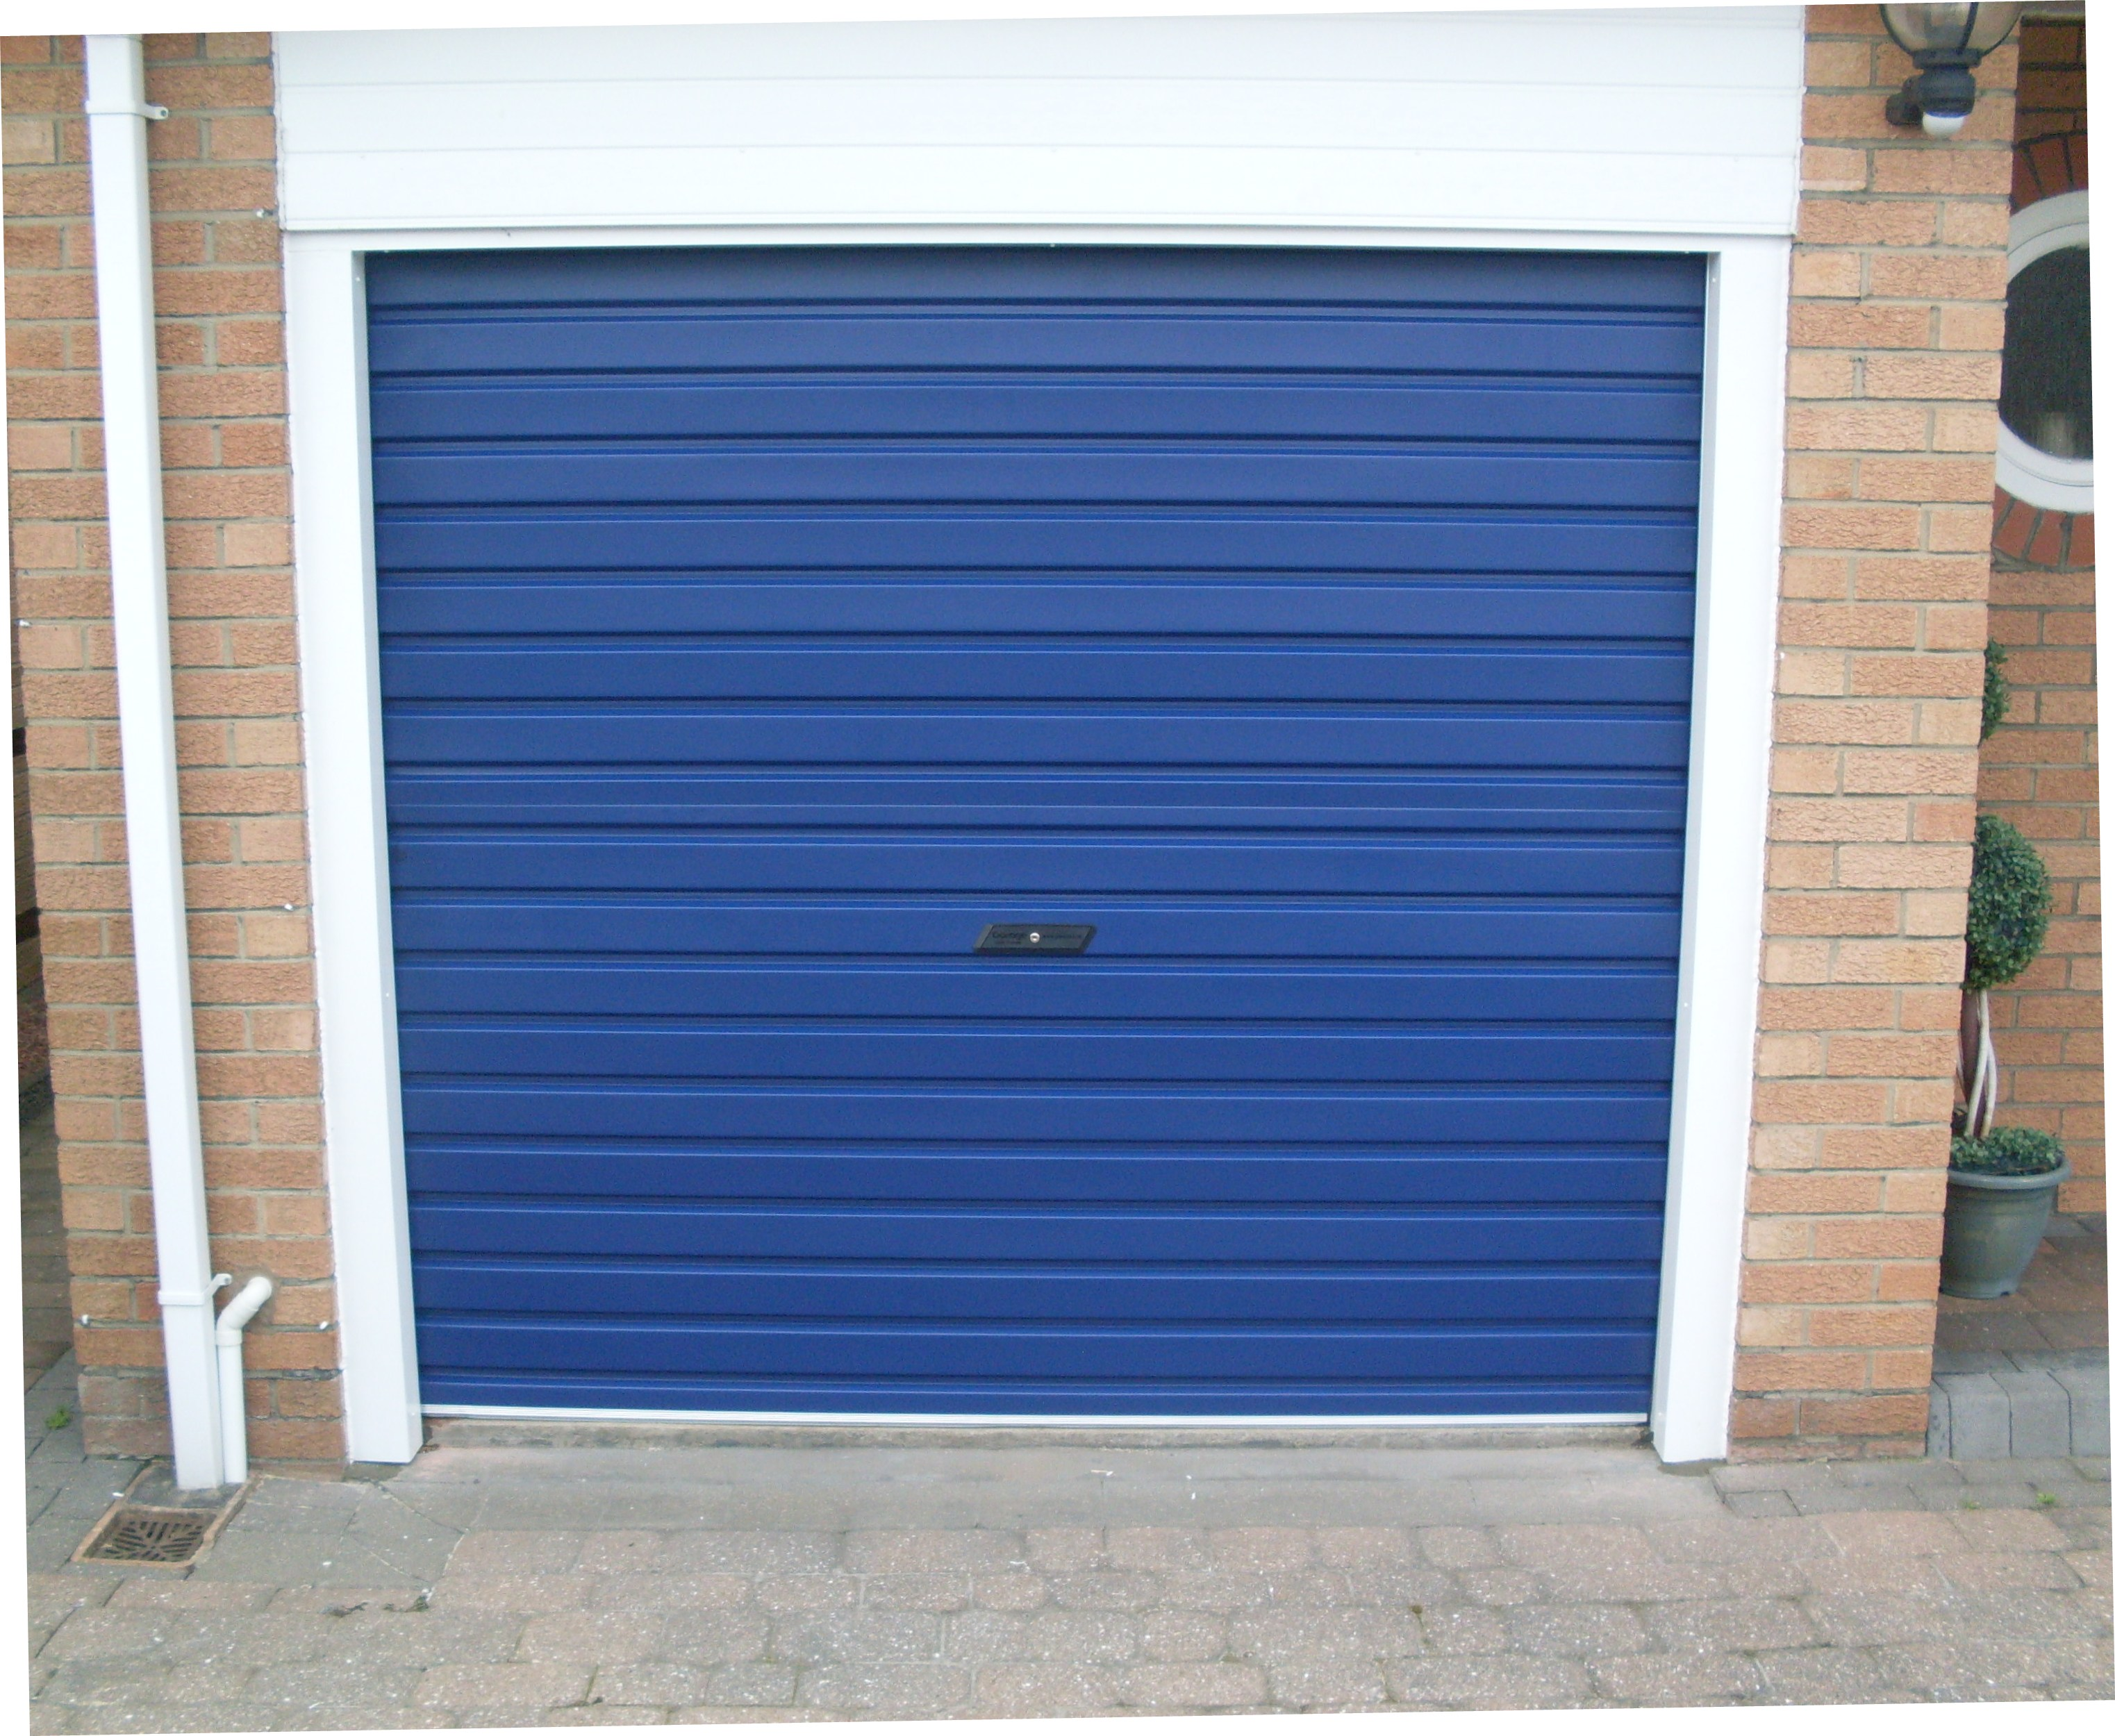 2500 #294886 Garage Doors Newcastle Newcastle Garage Doors Nortech Garage Doors  wallpaper Doors And Garage Doors 37153045